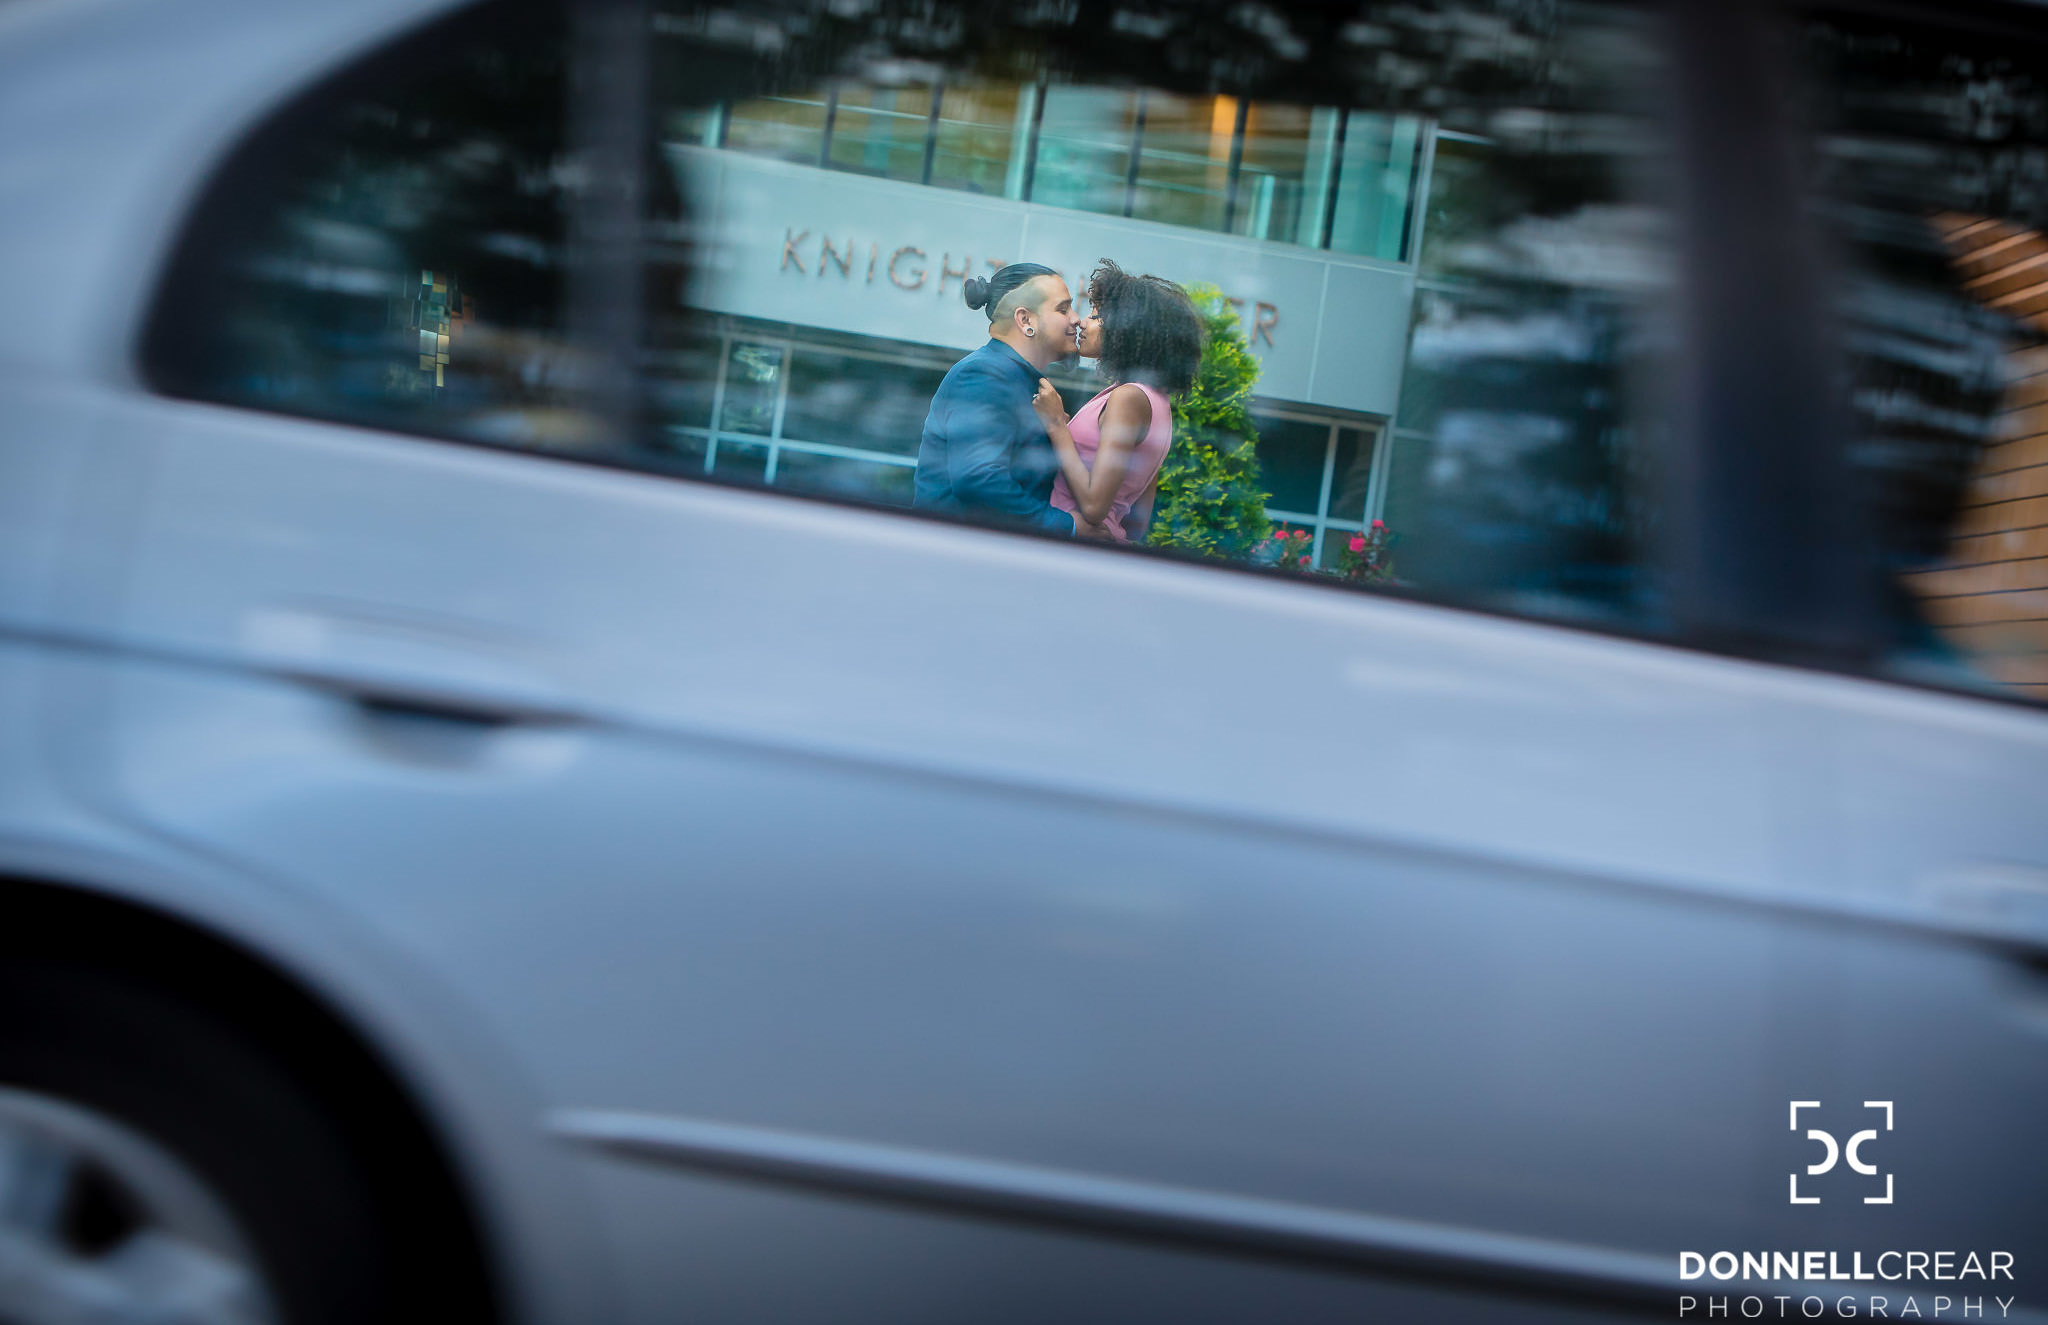 Uptown Charlotte Engagement Session in front of Bechtler Museum of Modern Art with couple kissing while framed in car window